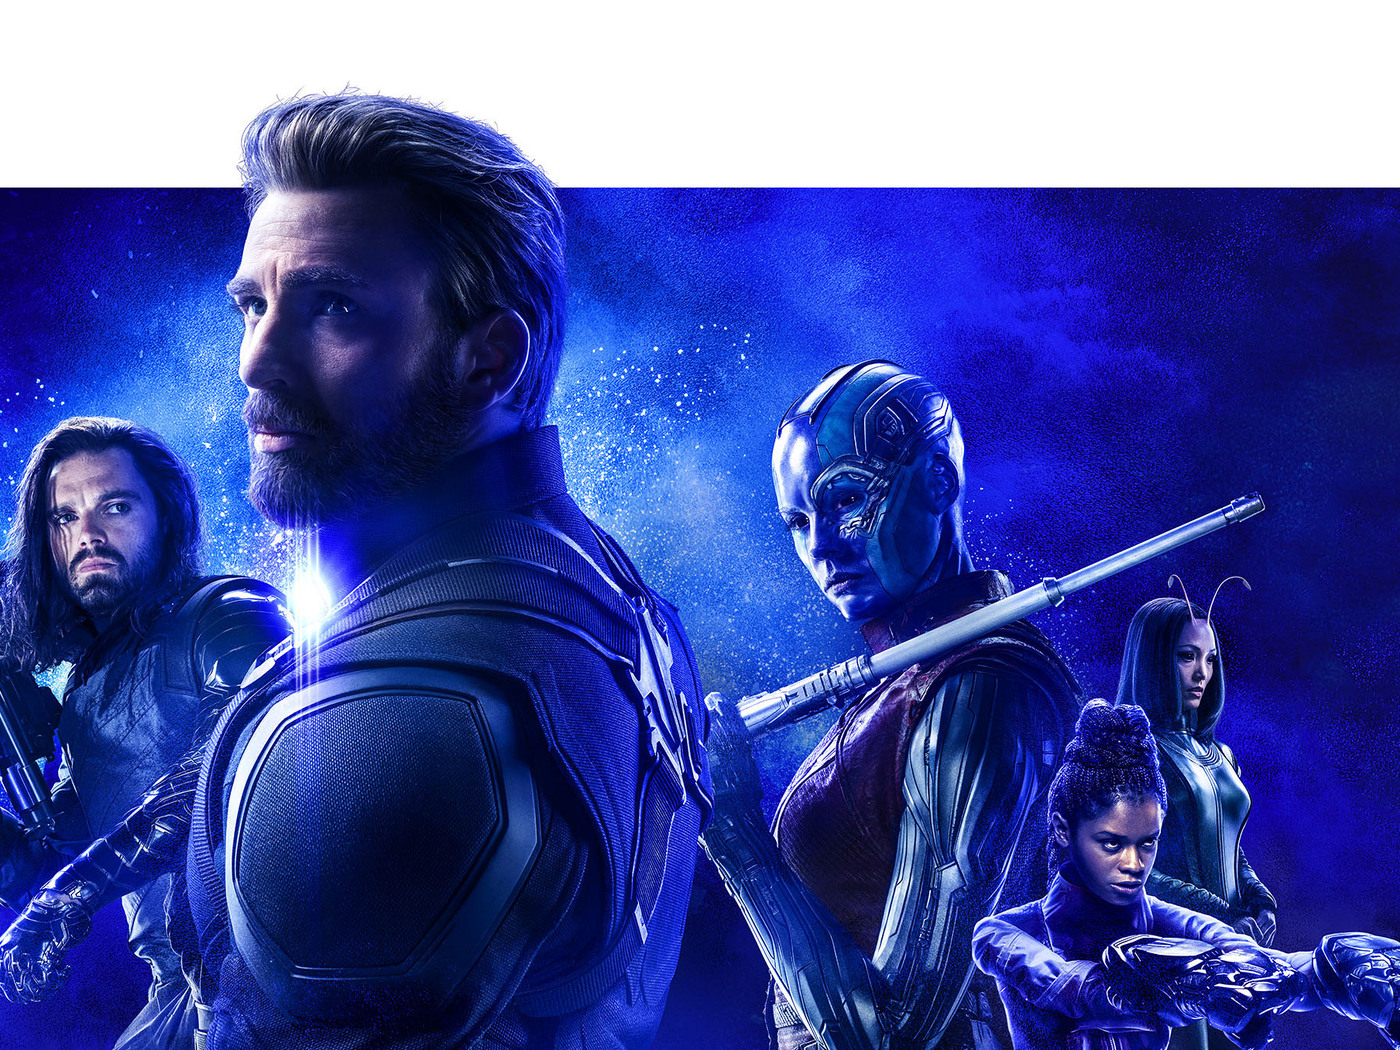 avengers-infinity-war-space-stone-poster-eh.jpg